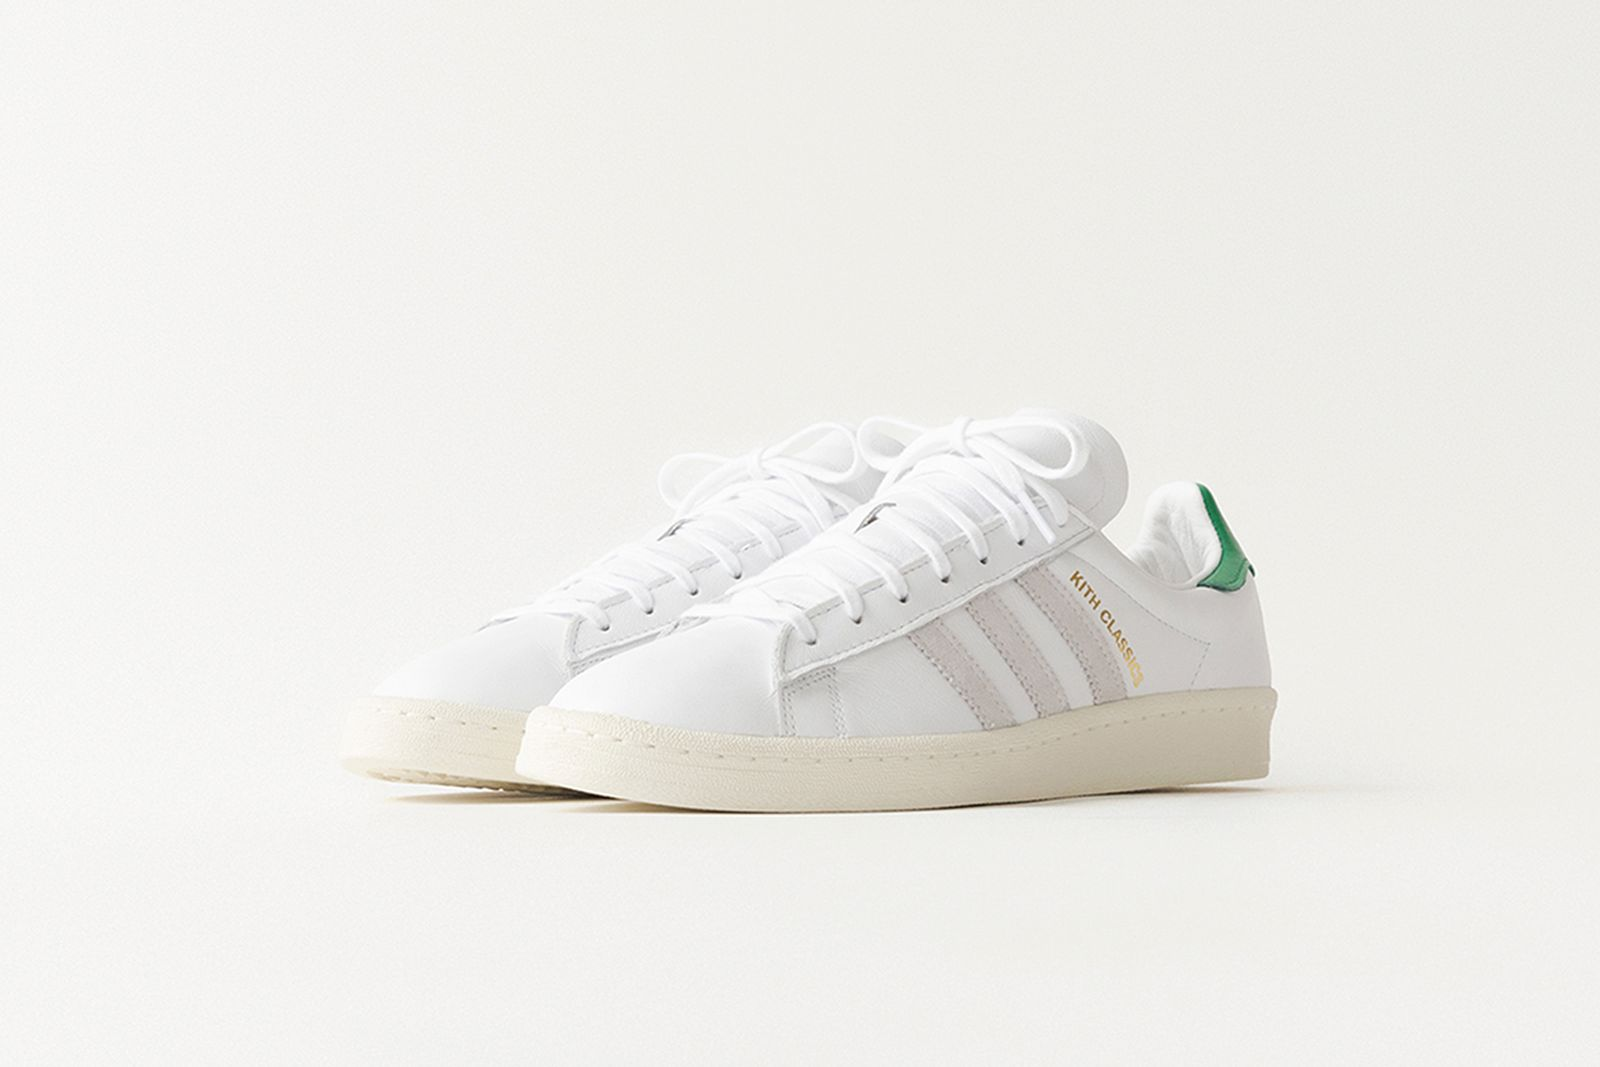 kith-adidas-summer-2021-release-info-14